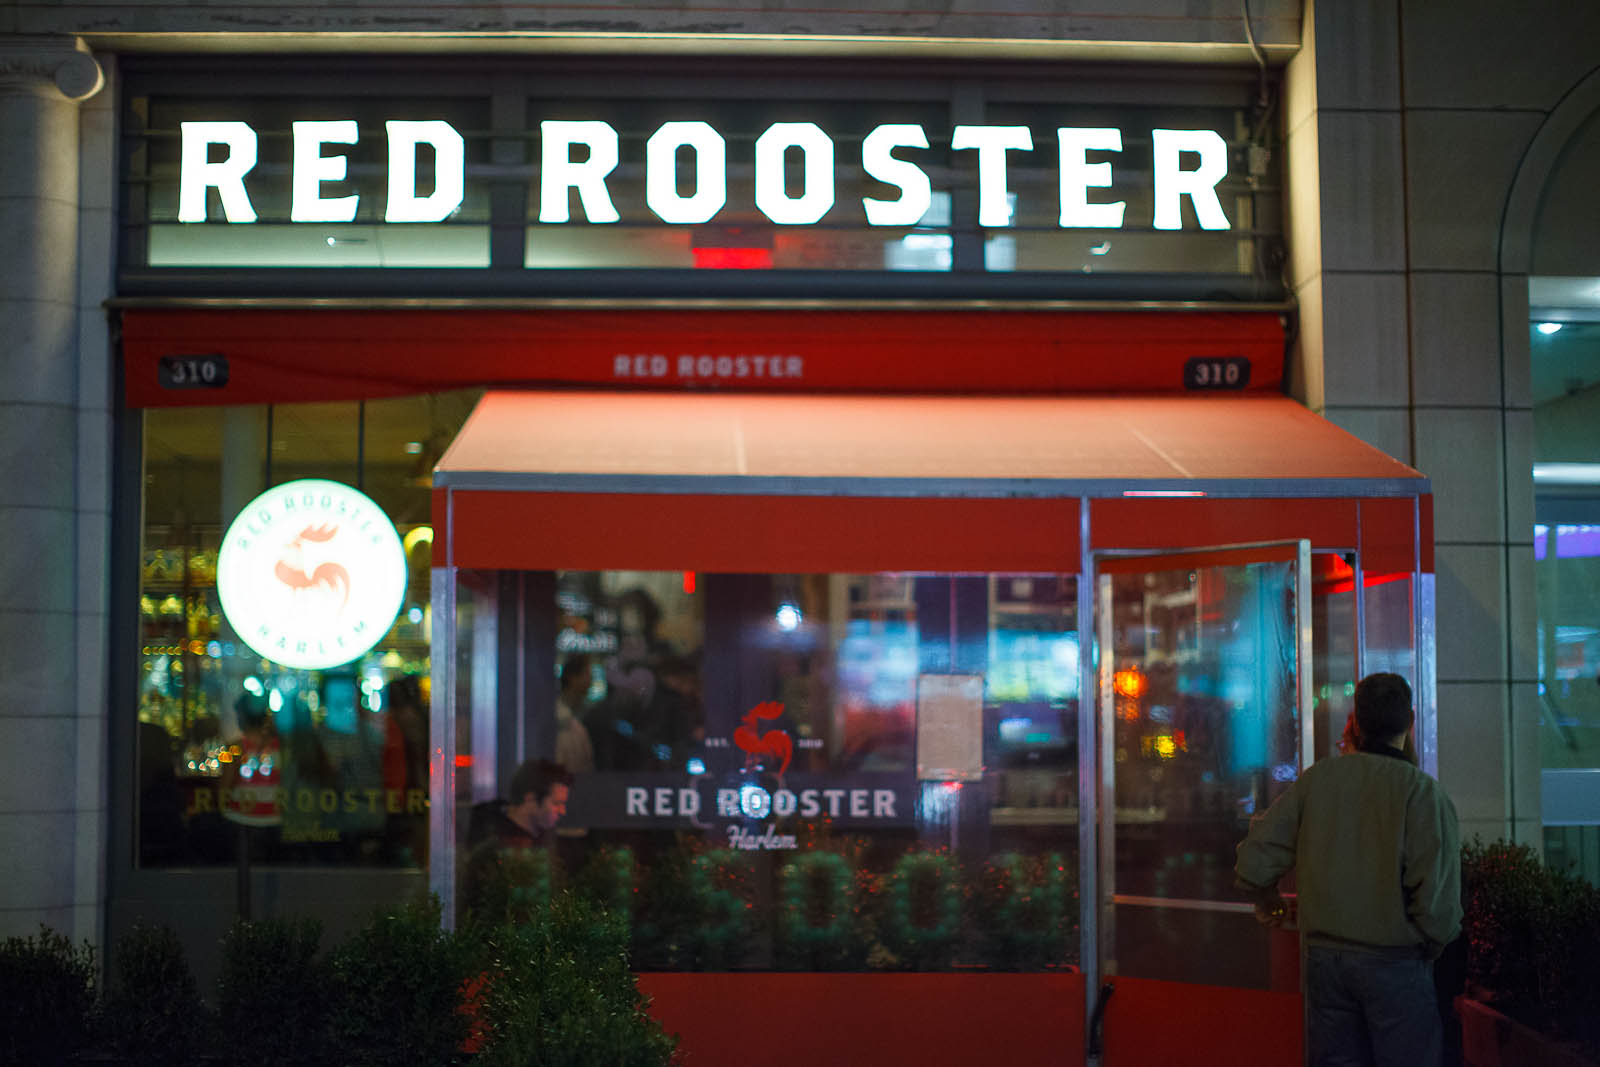 Red Rooster at night